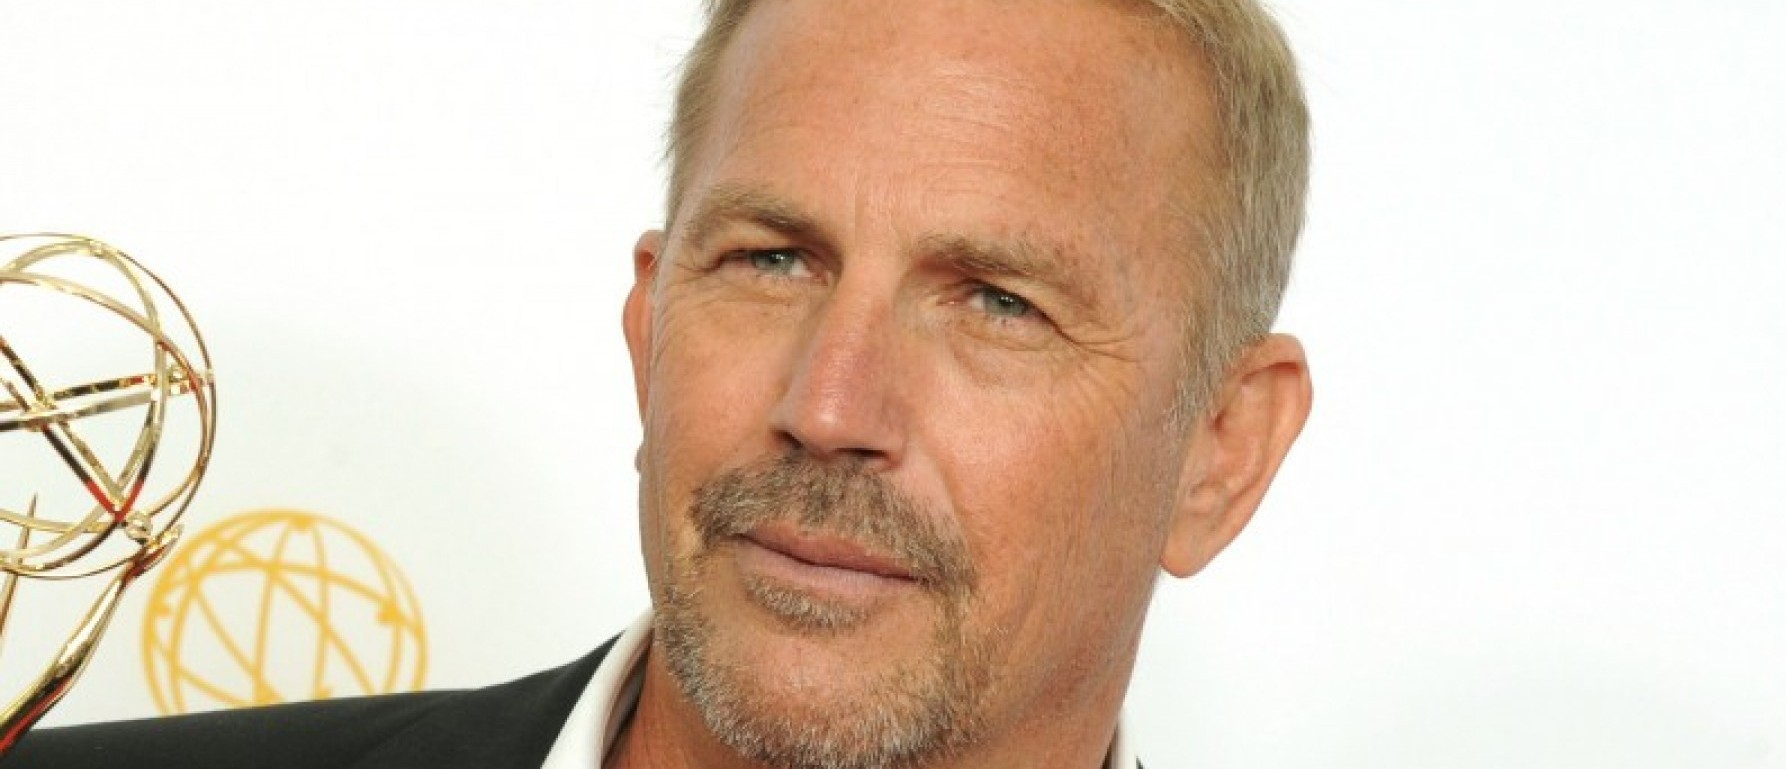 Kevin Costner: 'I Take Exception' To Michael Moore's 'Glib ... Daily Caller